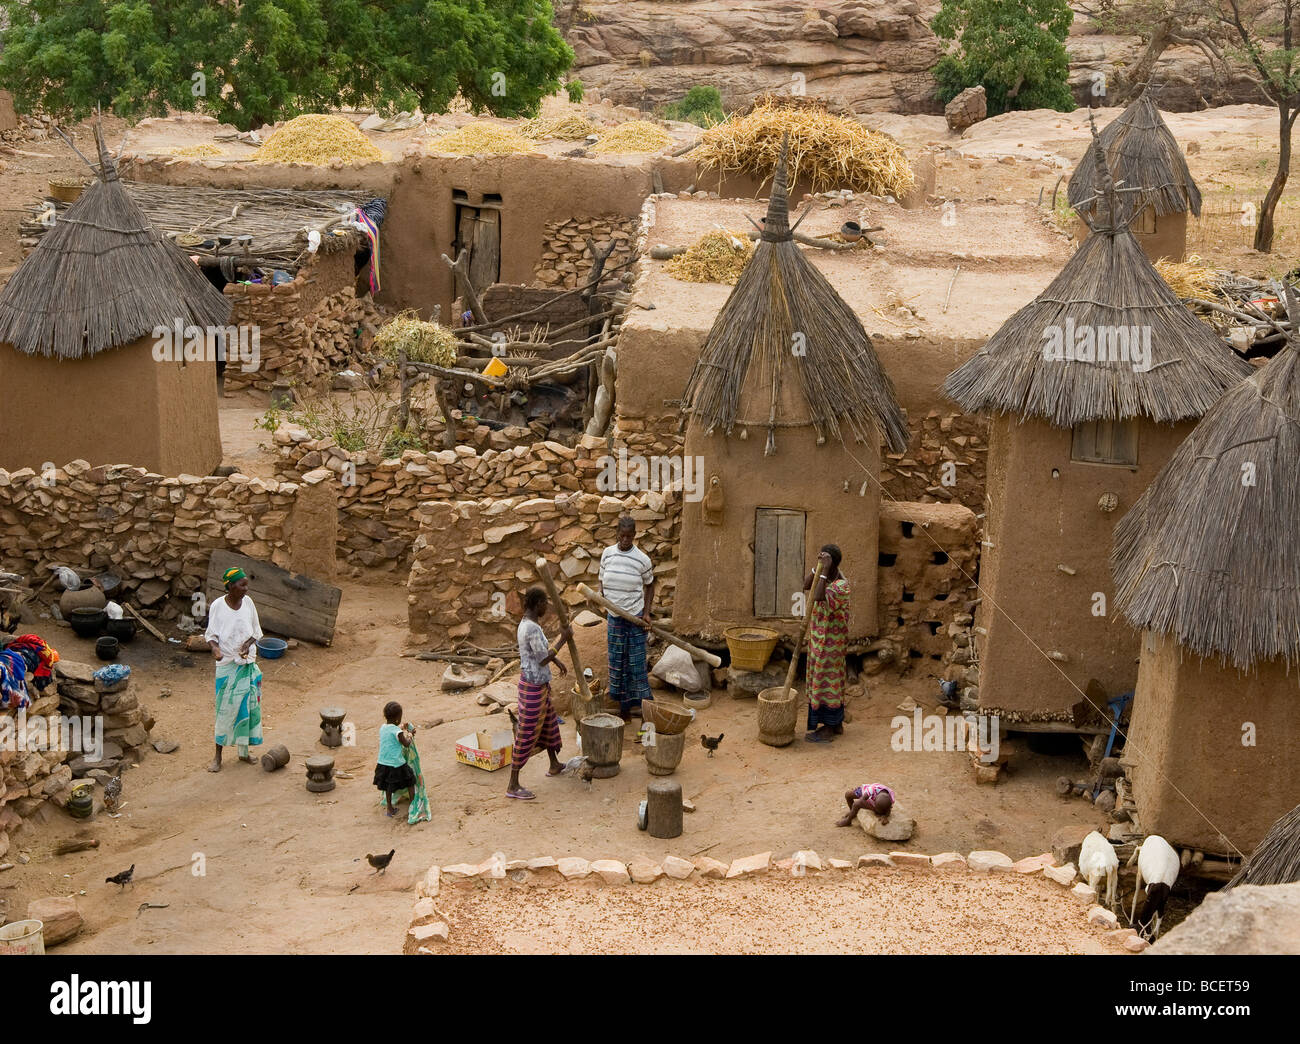 country style mobile homes with Stock Photo Mali Sahel Dogon Land Village Of Benigmato Dogon Family Cliffs Of 24912533 on 5136964974 also 85740389 further 5029467063 additionally 951 Sq And Rec Nh Home also 4527508862.